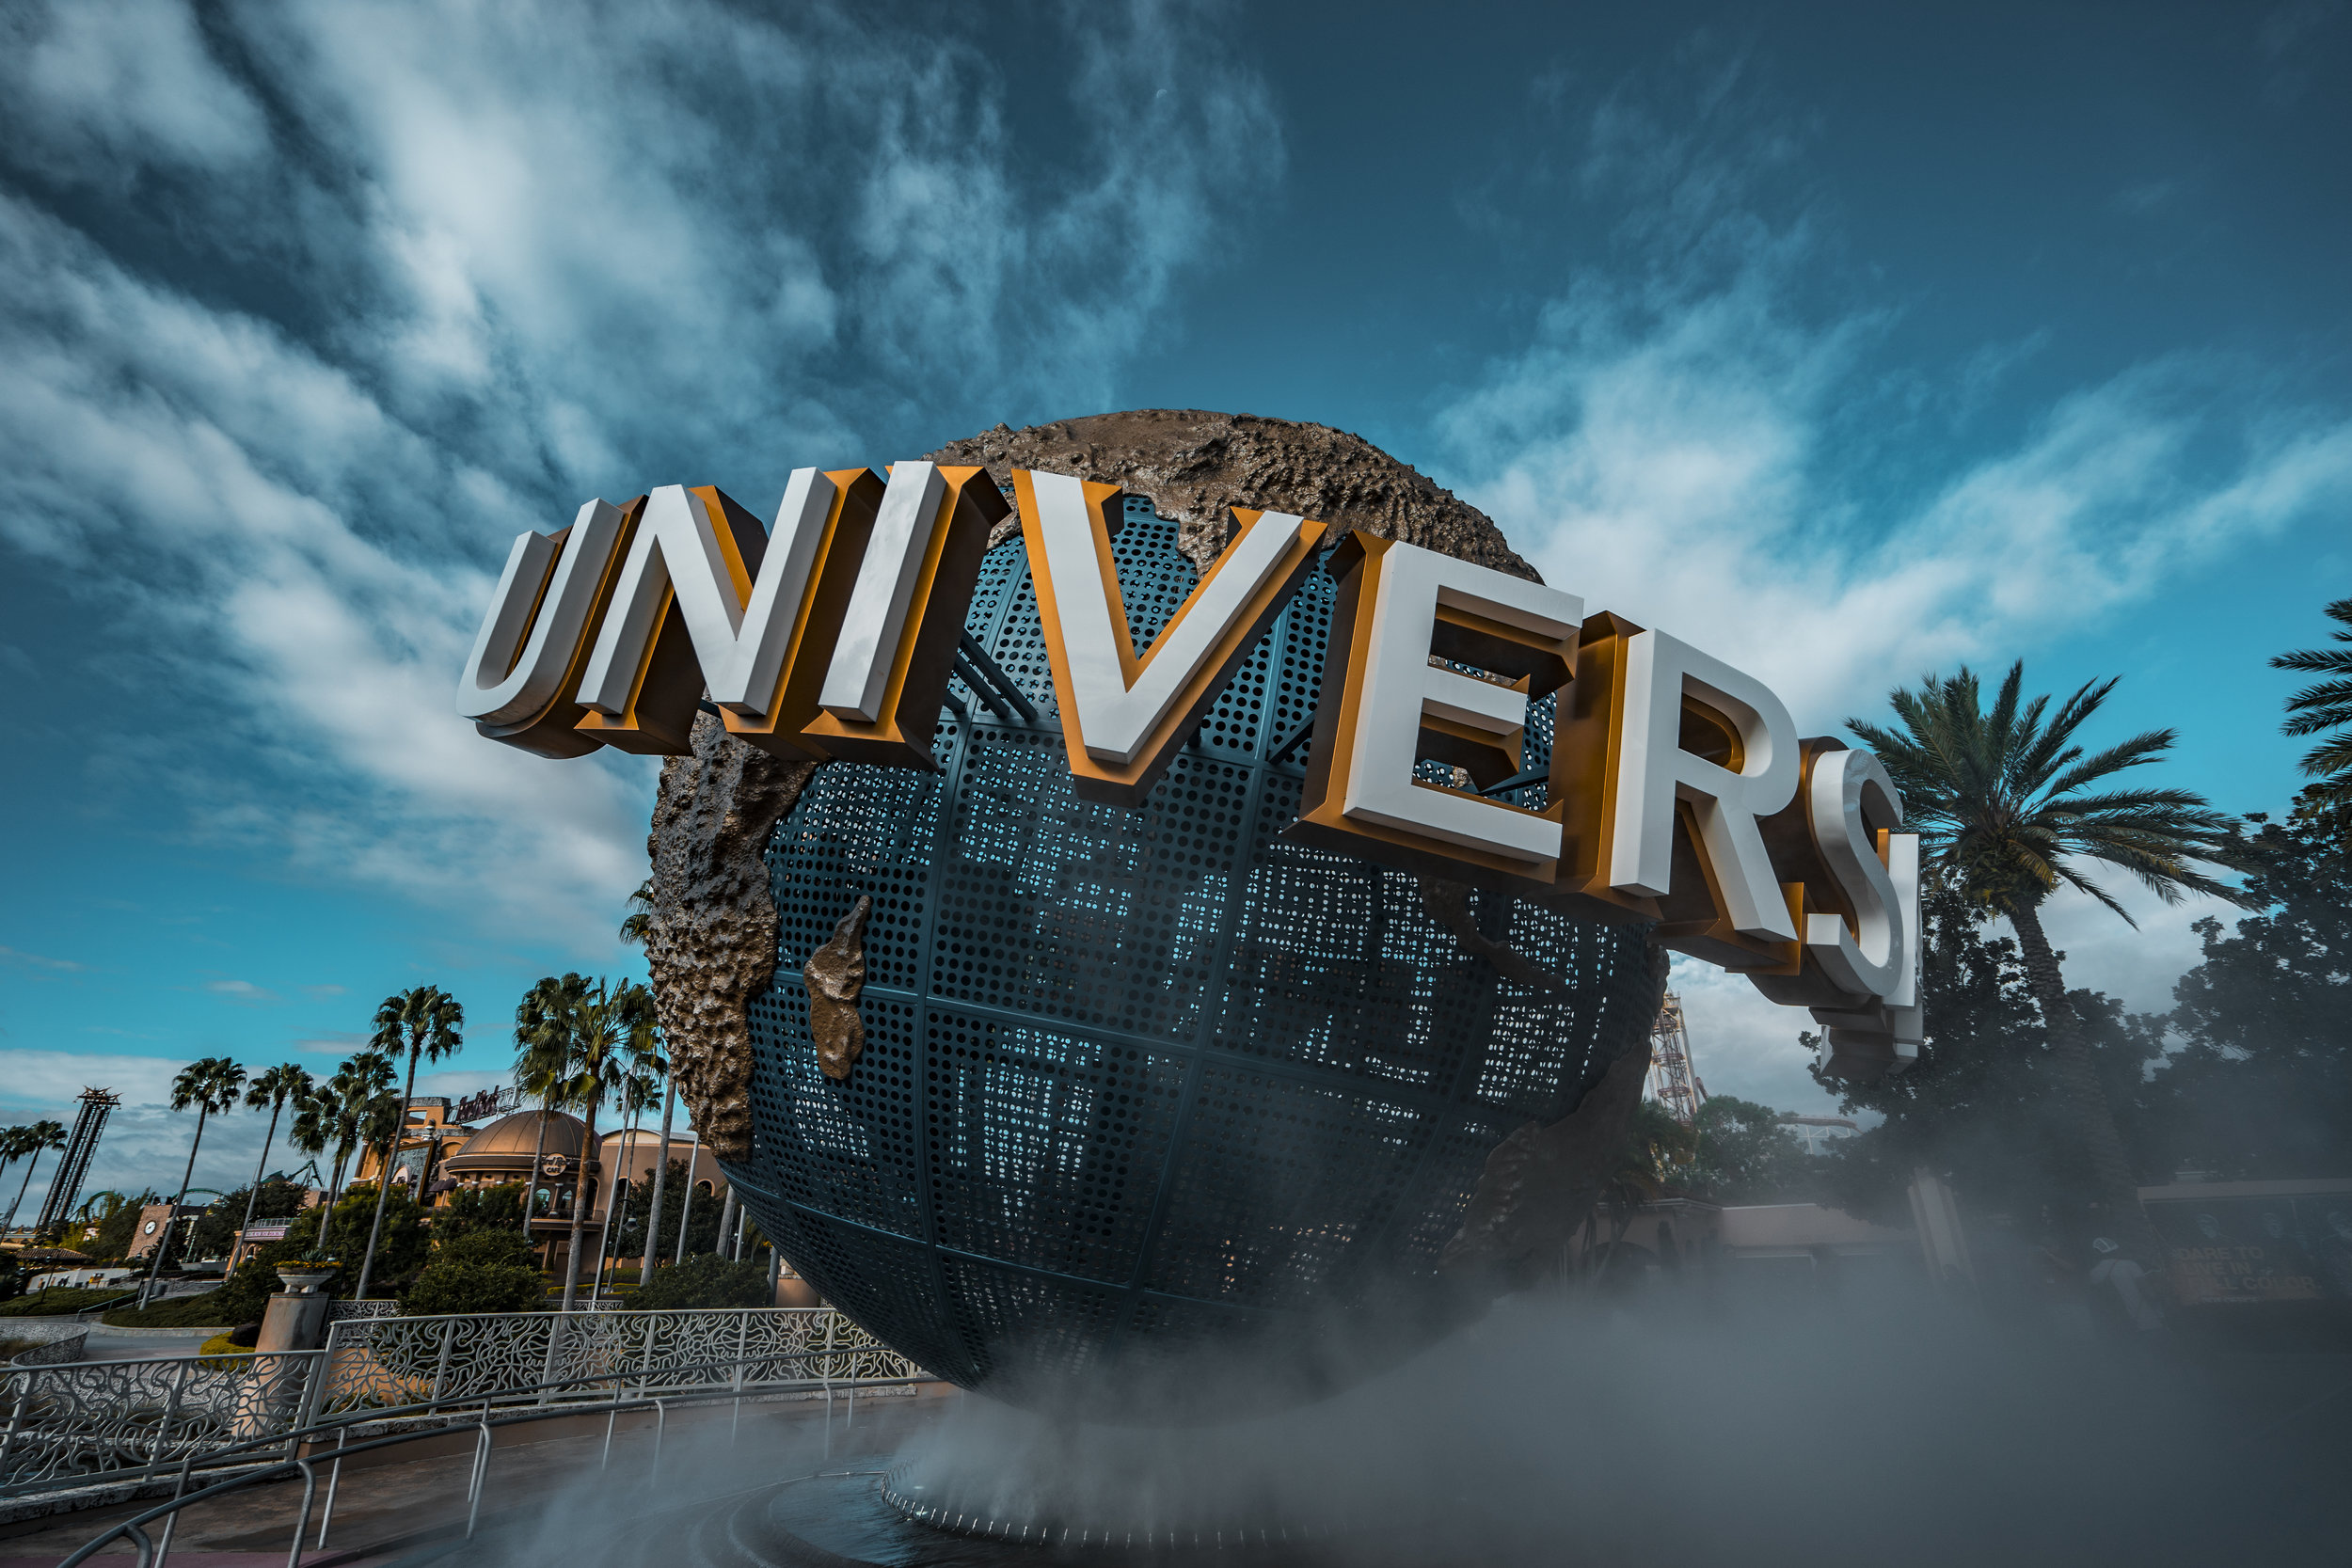 Universal Orlando Resort® - There is fun for the whole family with advanced attractions and experiences based around favorite movies and TV shows.  Experience Hogsmeade and Diagon Alley when you find yourself in The Wizarding World of Harry Potter.